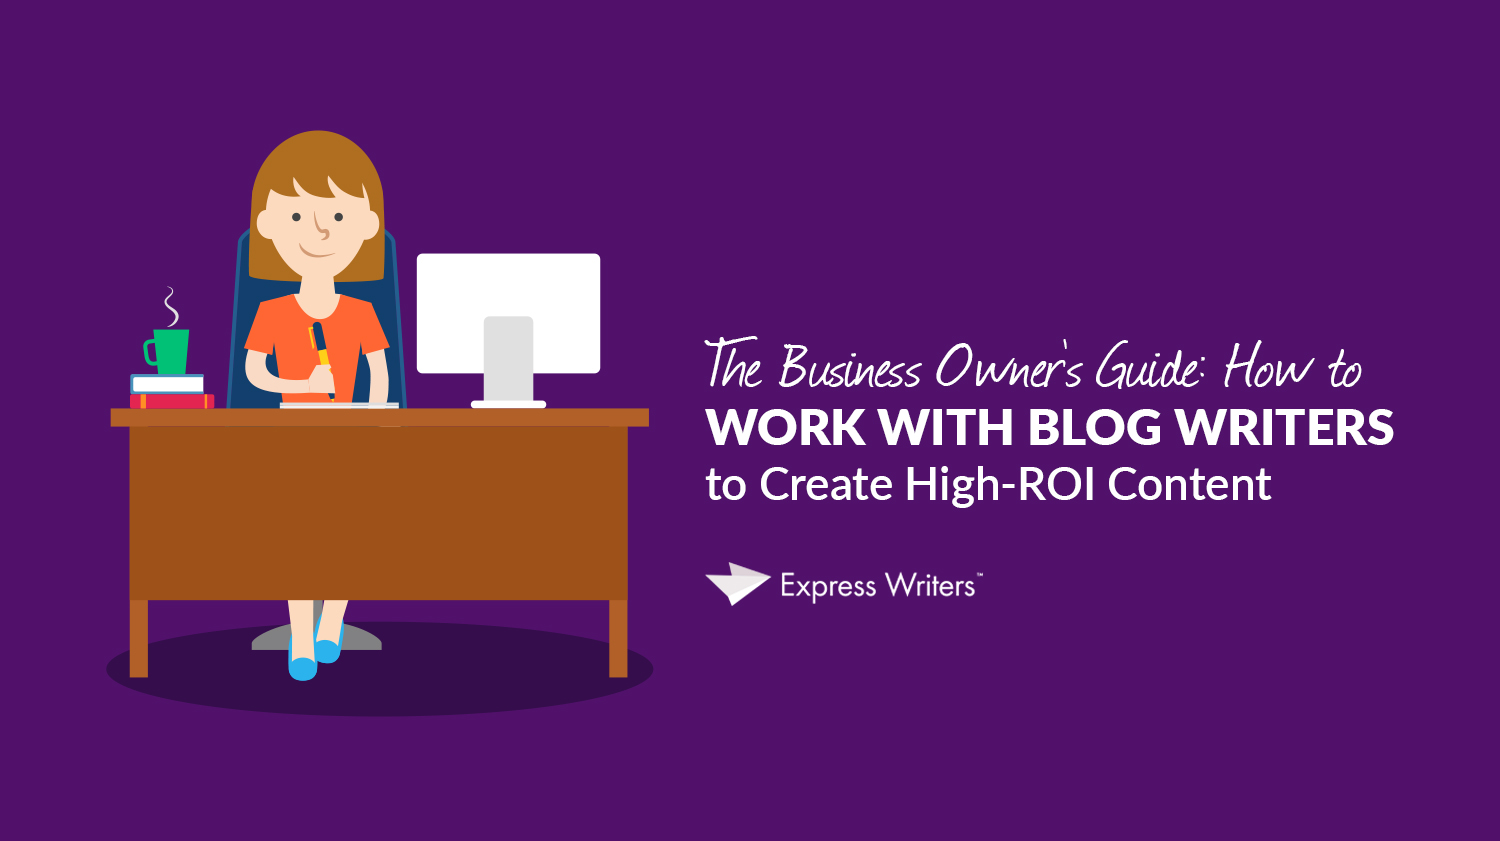 business guide on how to work with blog writers